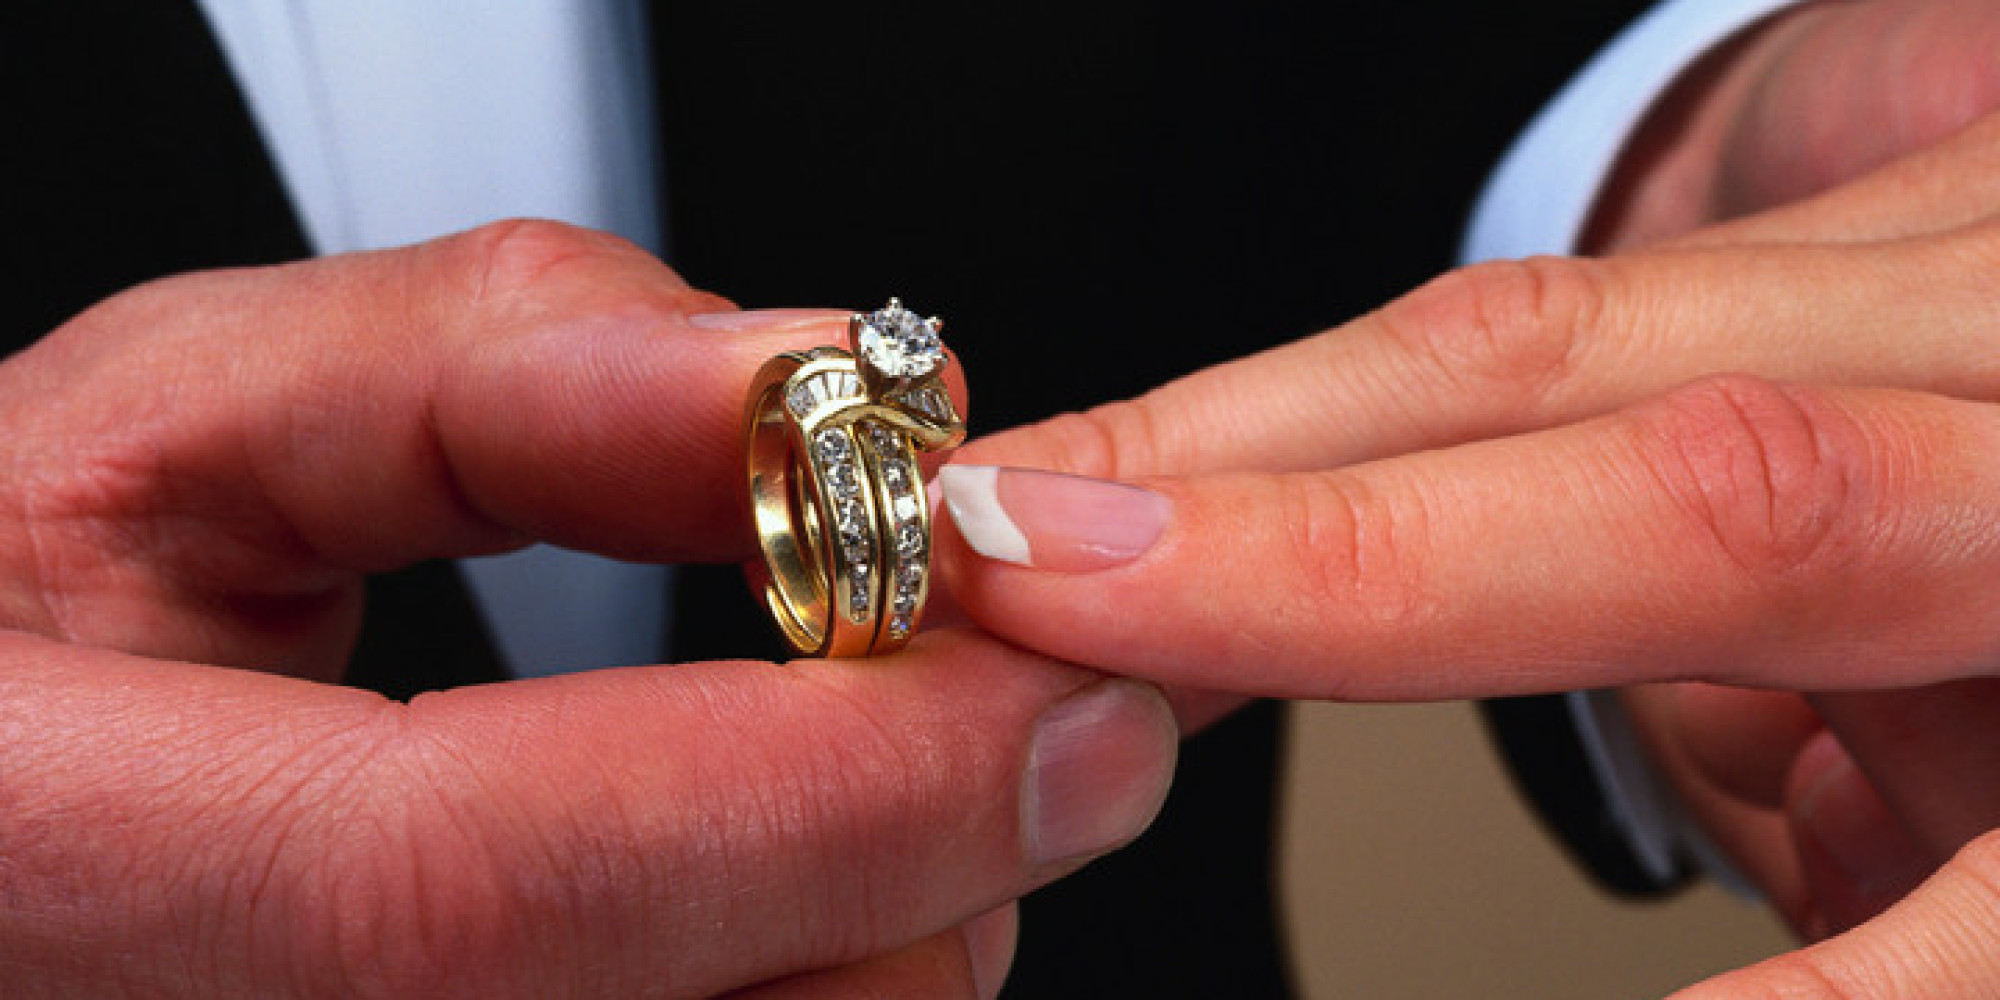 Six Tips to Incorporate Your Faith Into Your Wedding Day | HuffPost